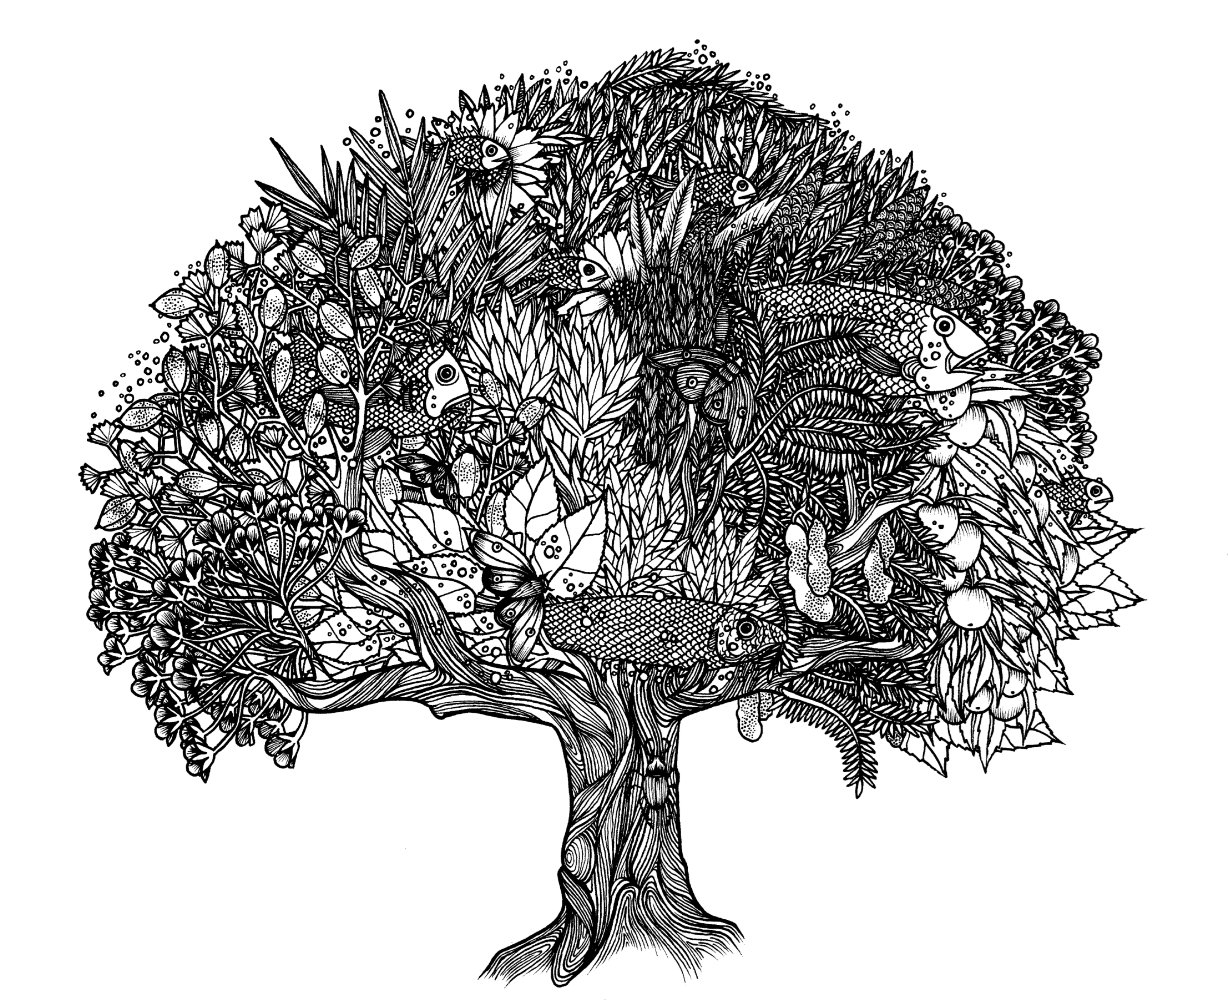 Tree illlustration Tom Berry